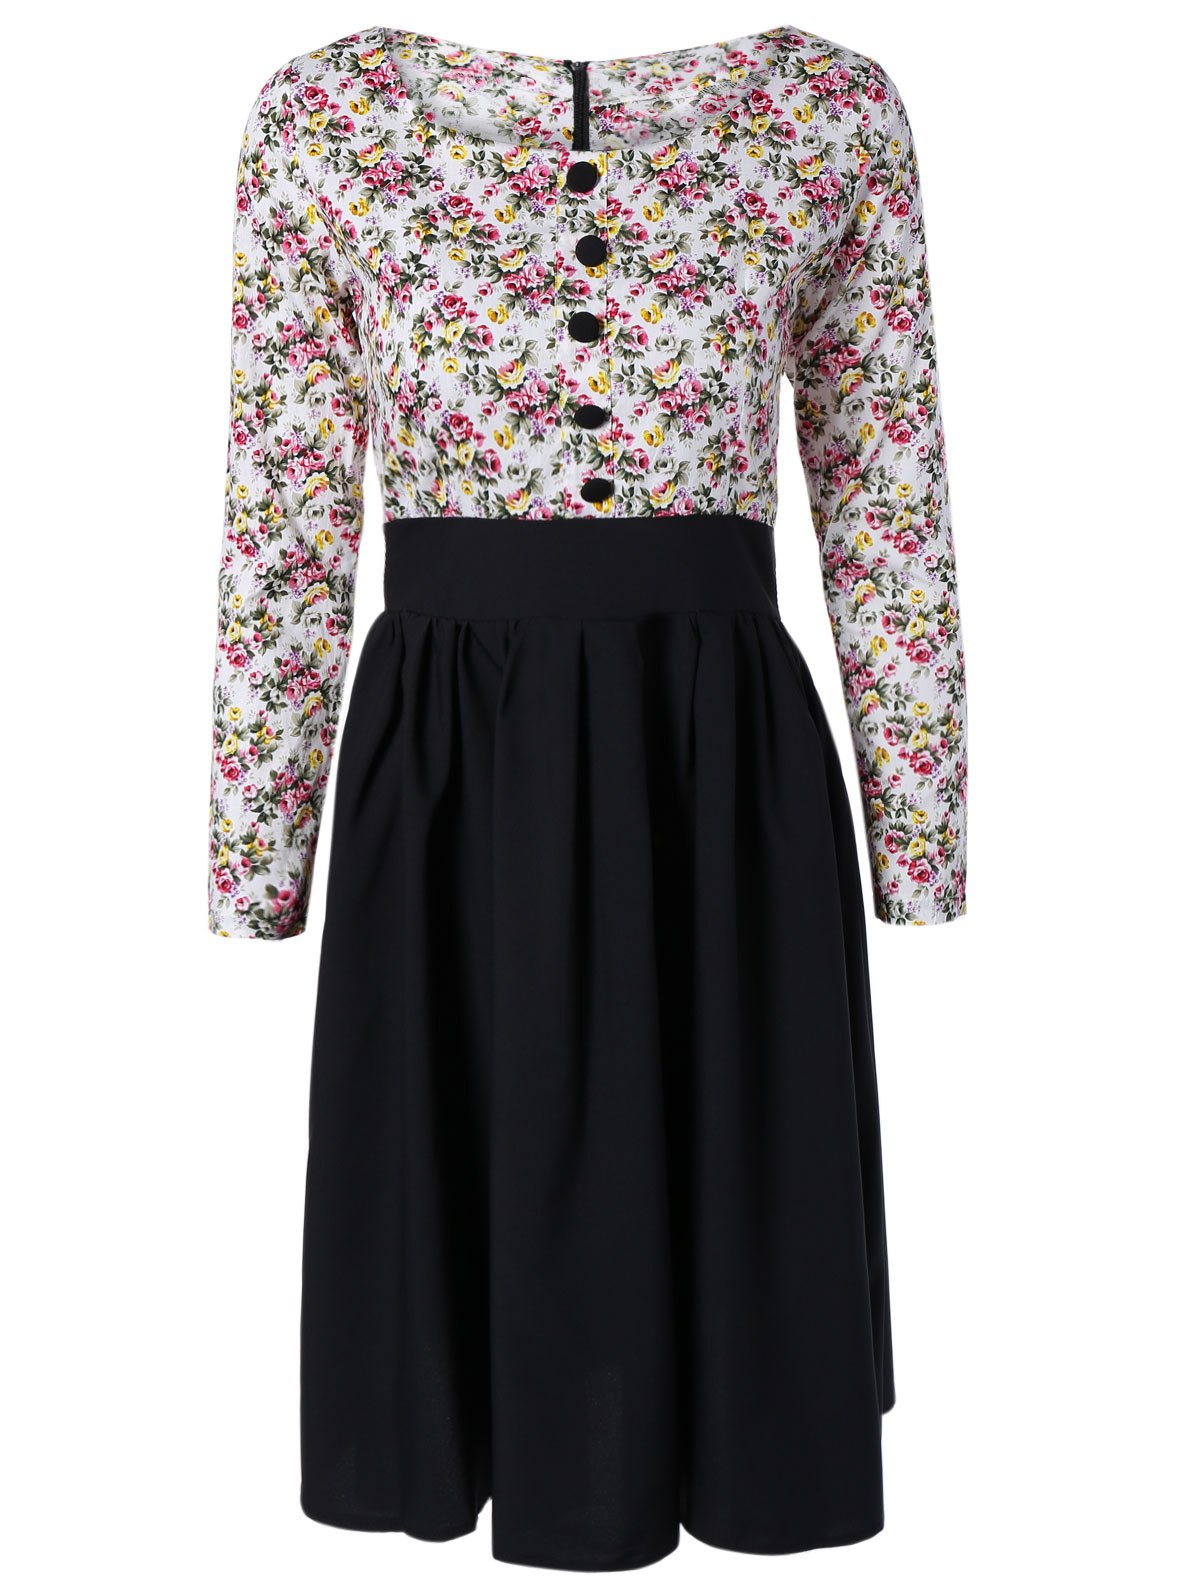 Vintage Long Sleeve Floral Print Pin Up Dress